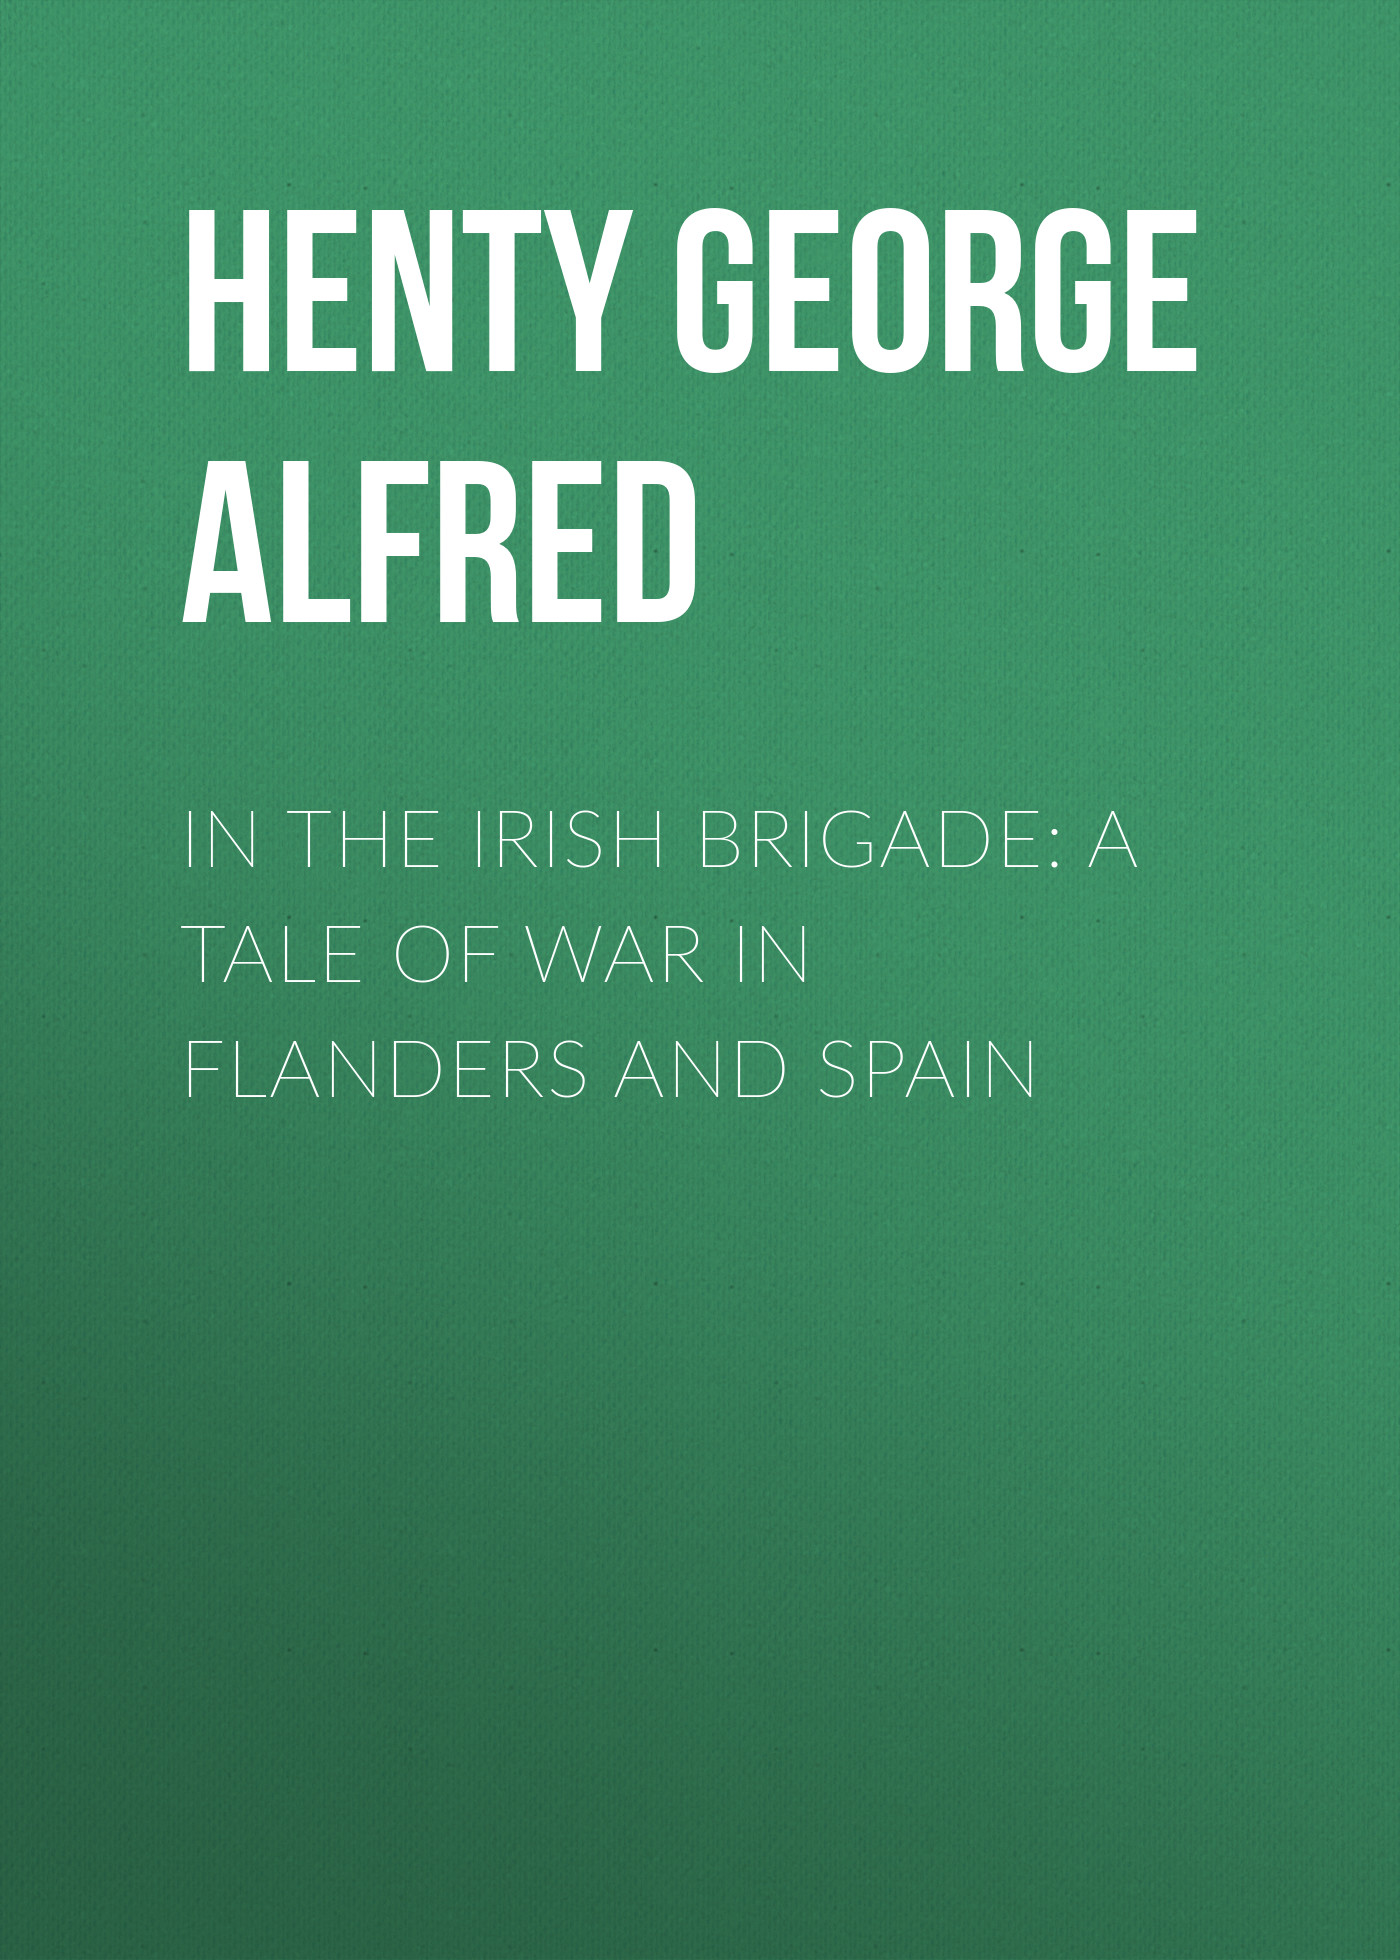 Henty George Alfred In the Irish Brigade: A Tale of War in Flanders and Spain henty george alfred in the reign of terror the adventures of a westminster boy